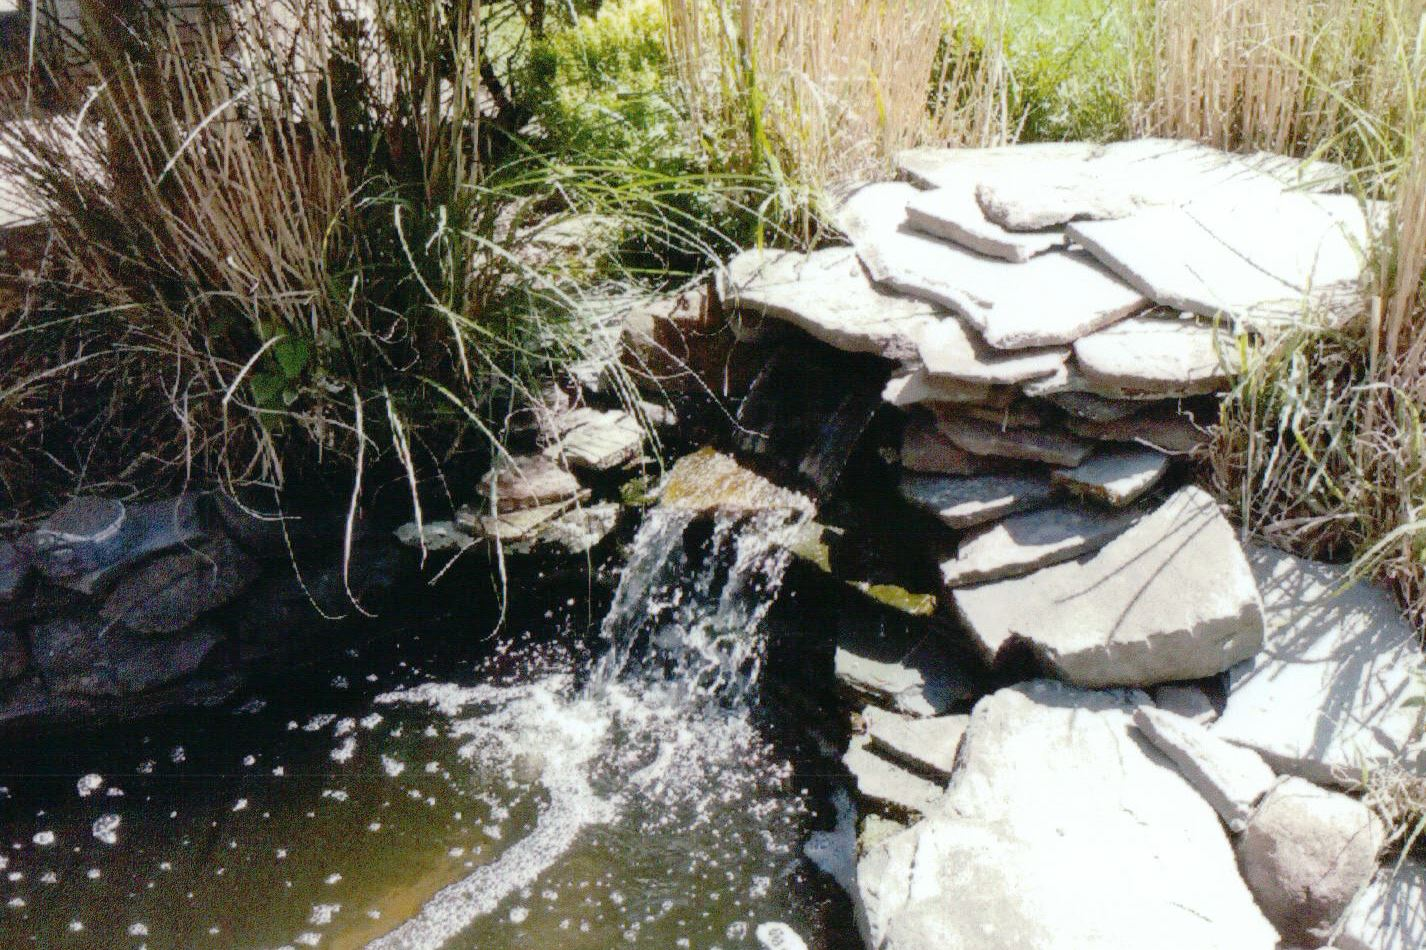 Blackfeld Fisheries Waterfalls